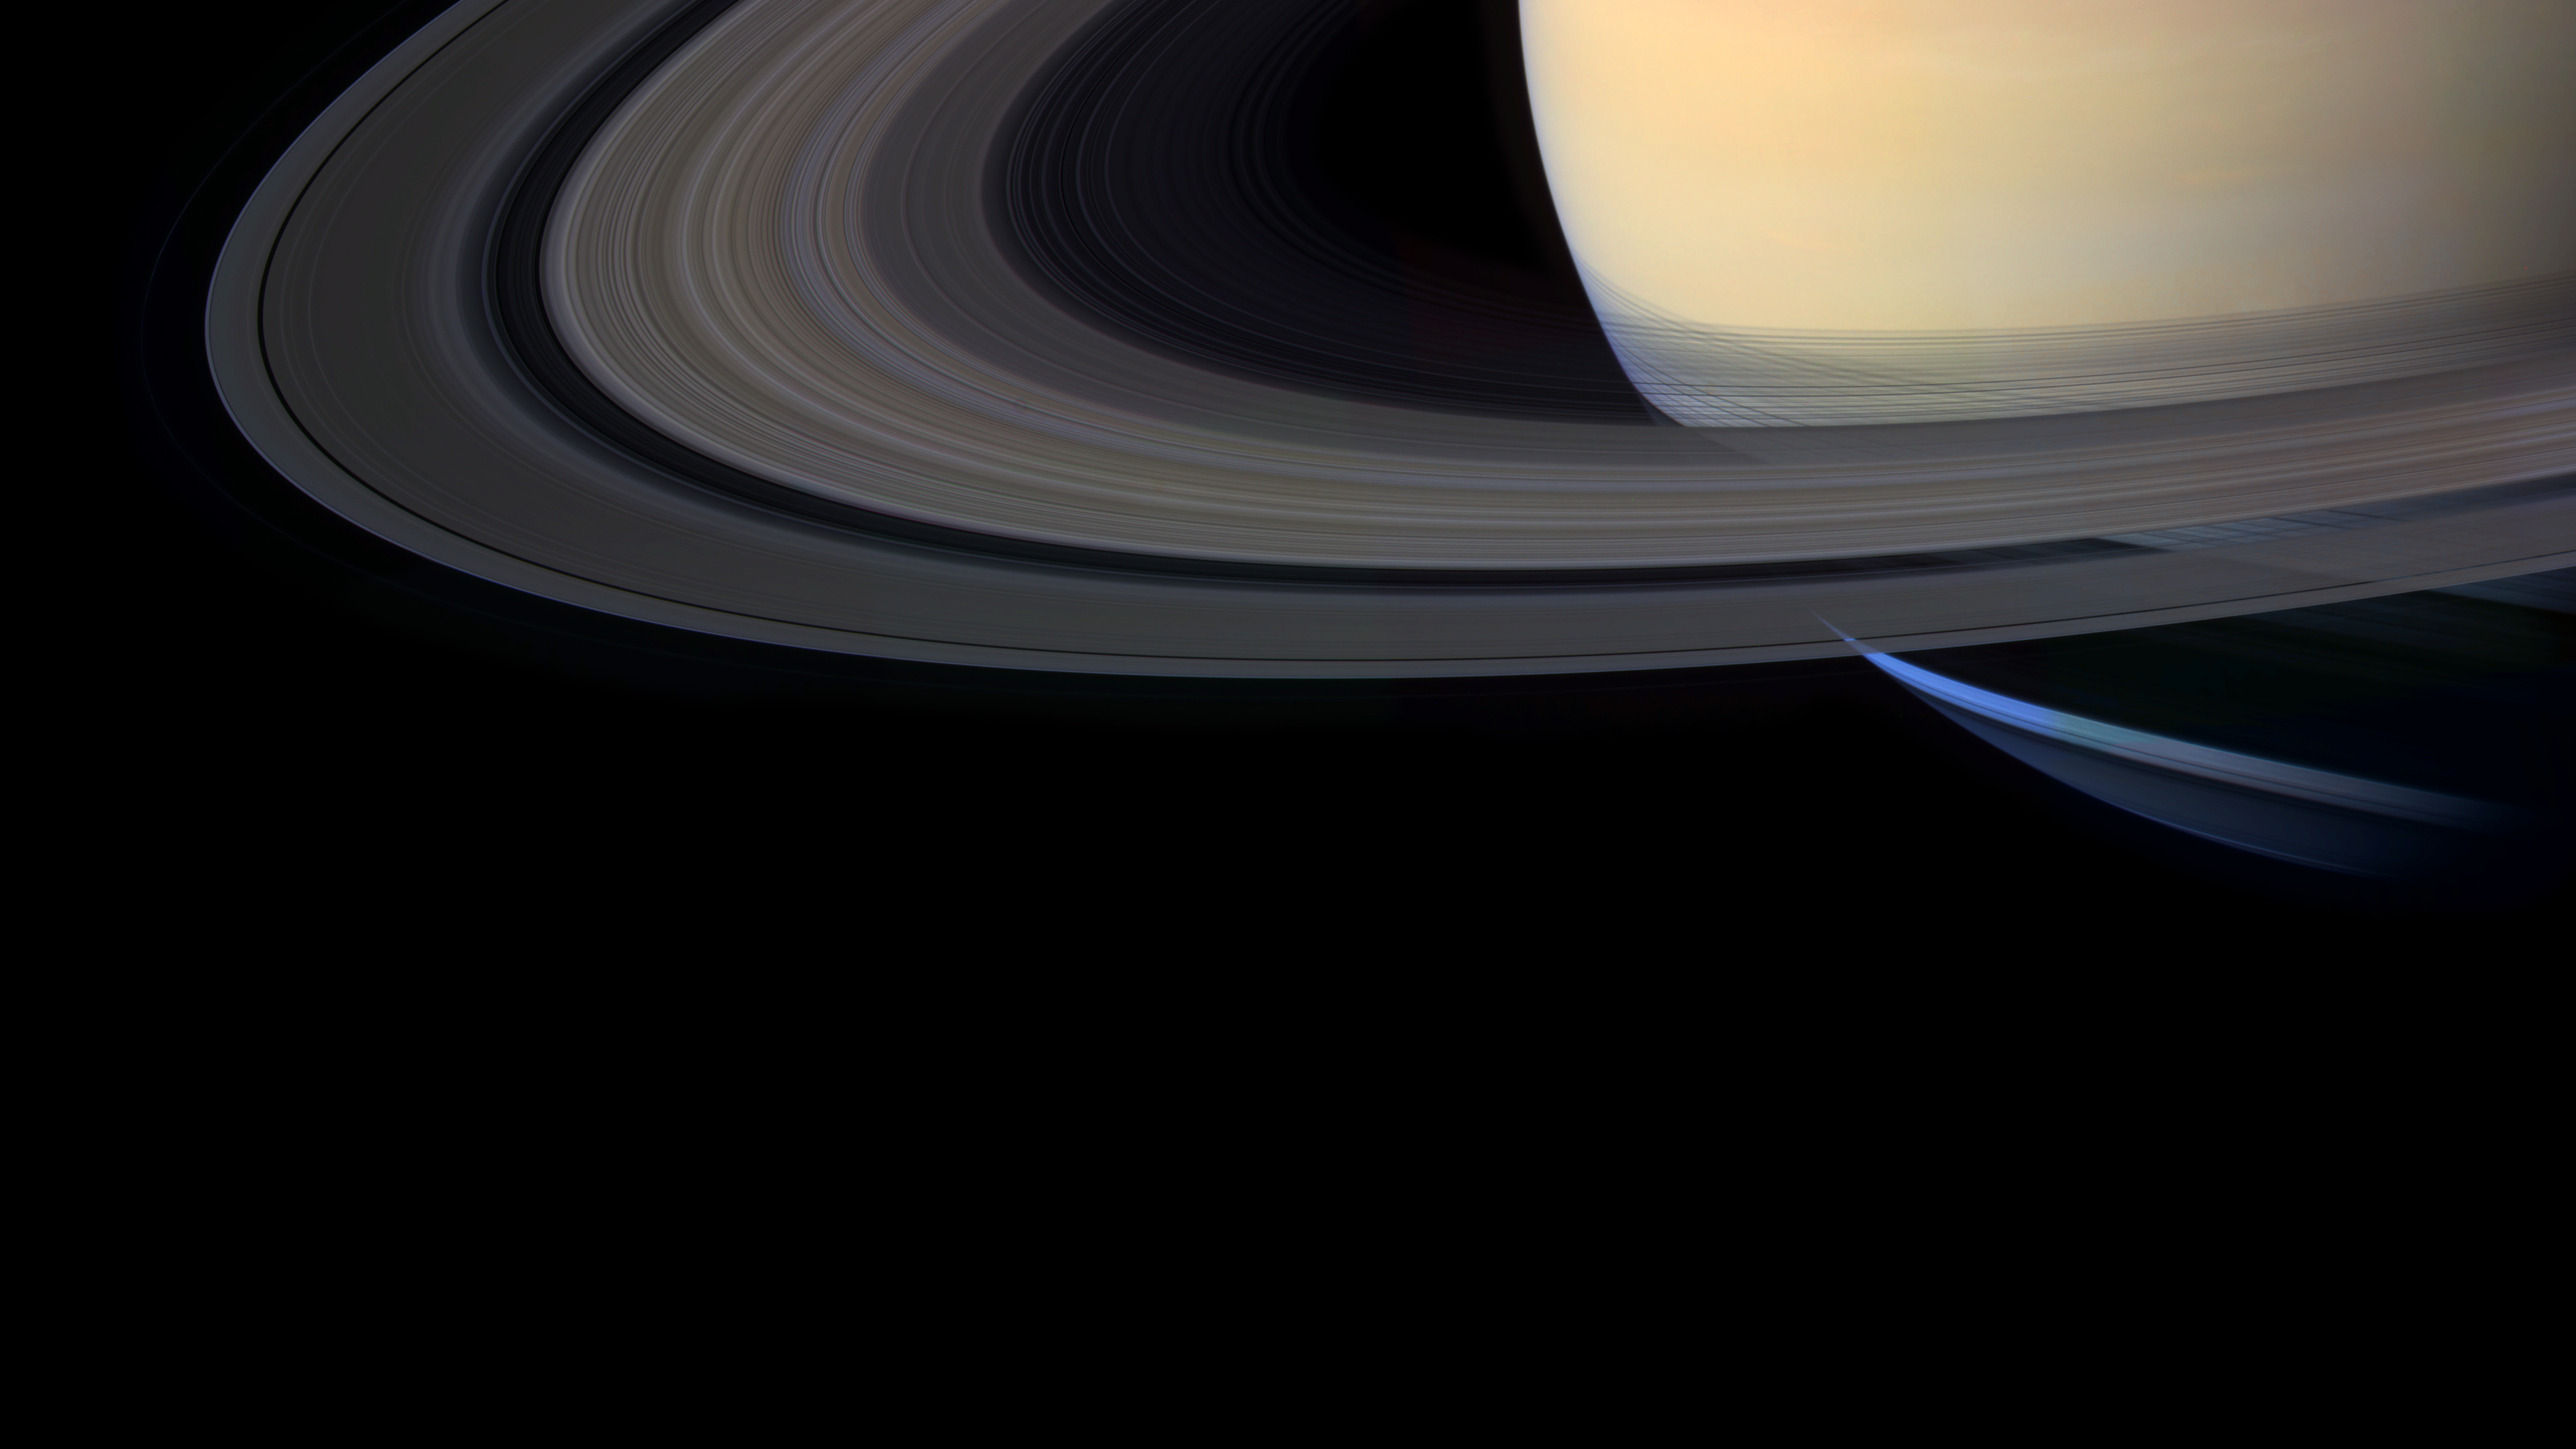 3840x2160 - Saturn Wallpapers 13